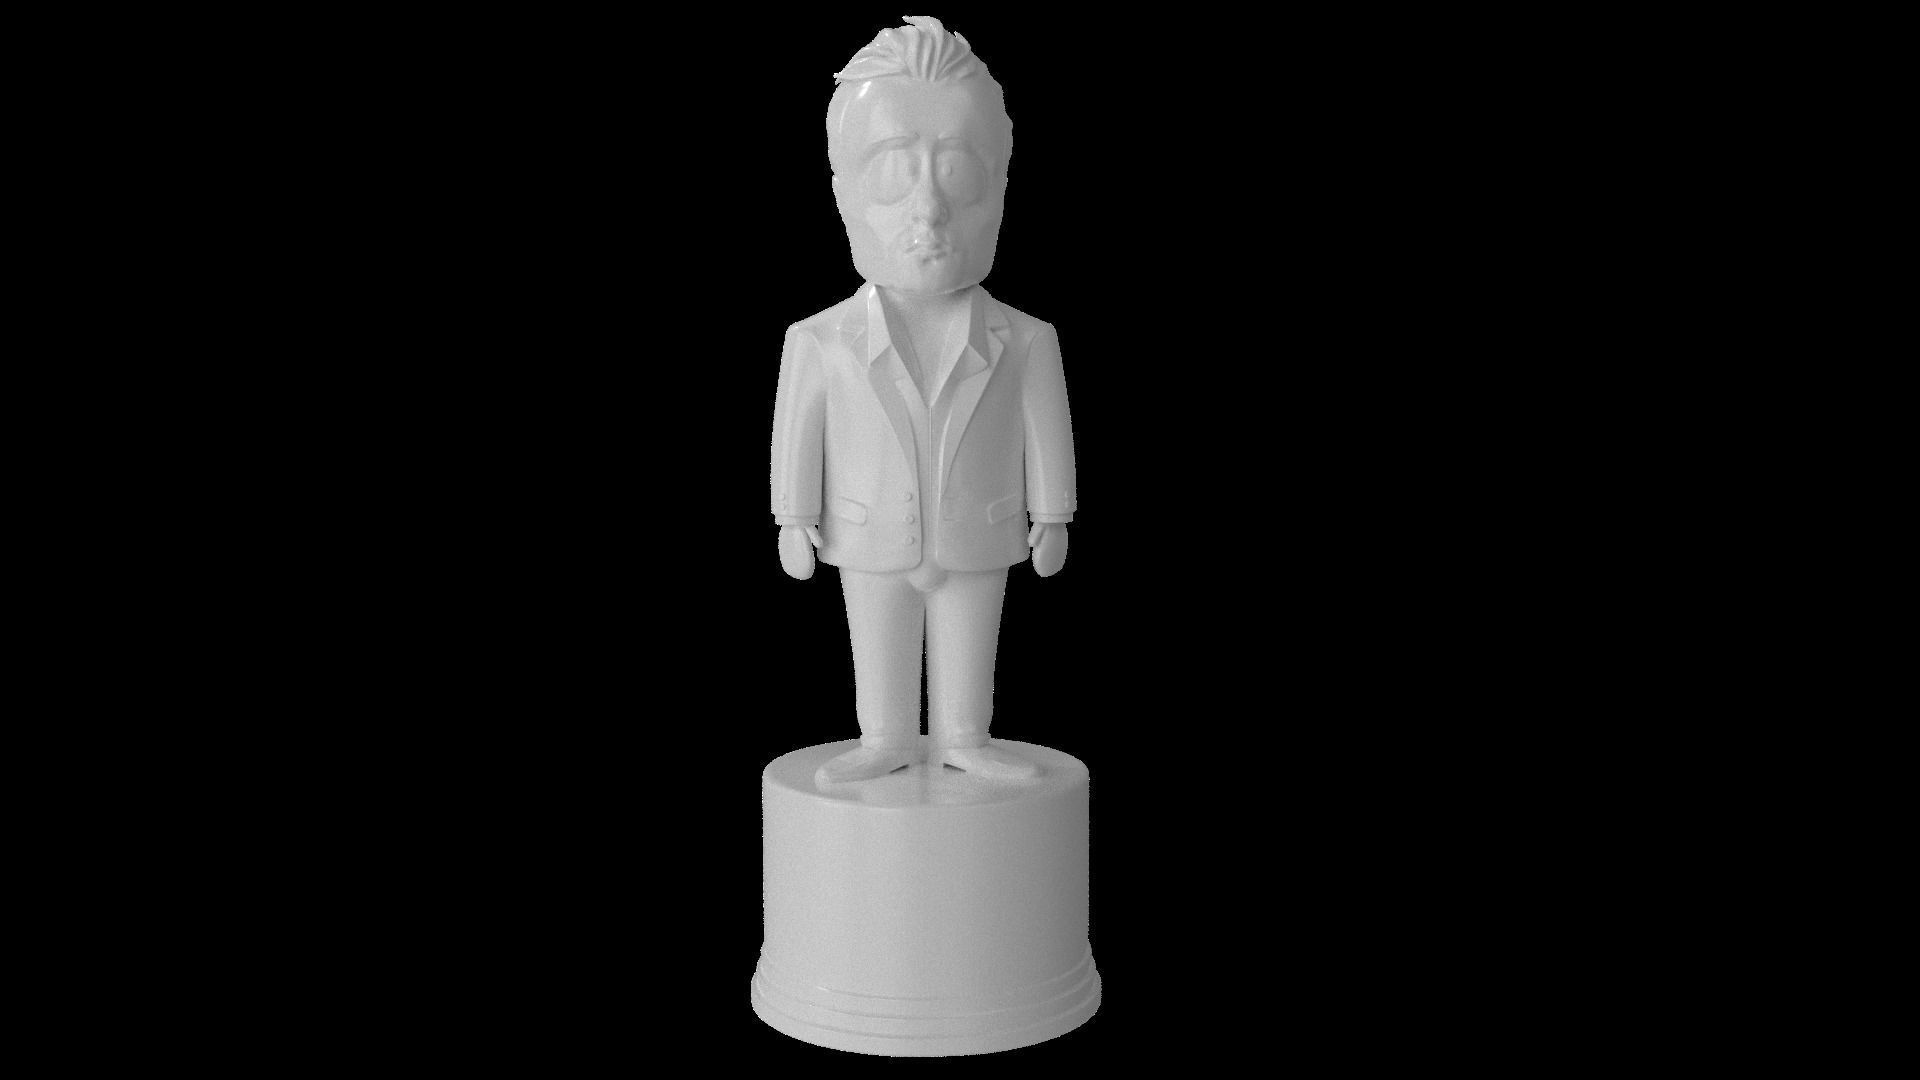 South Park styled Elon Musk statue